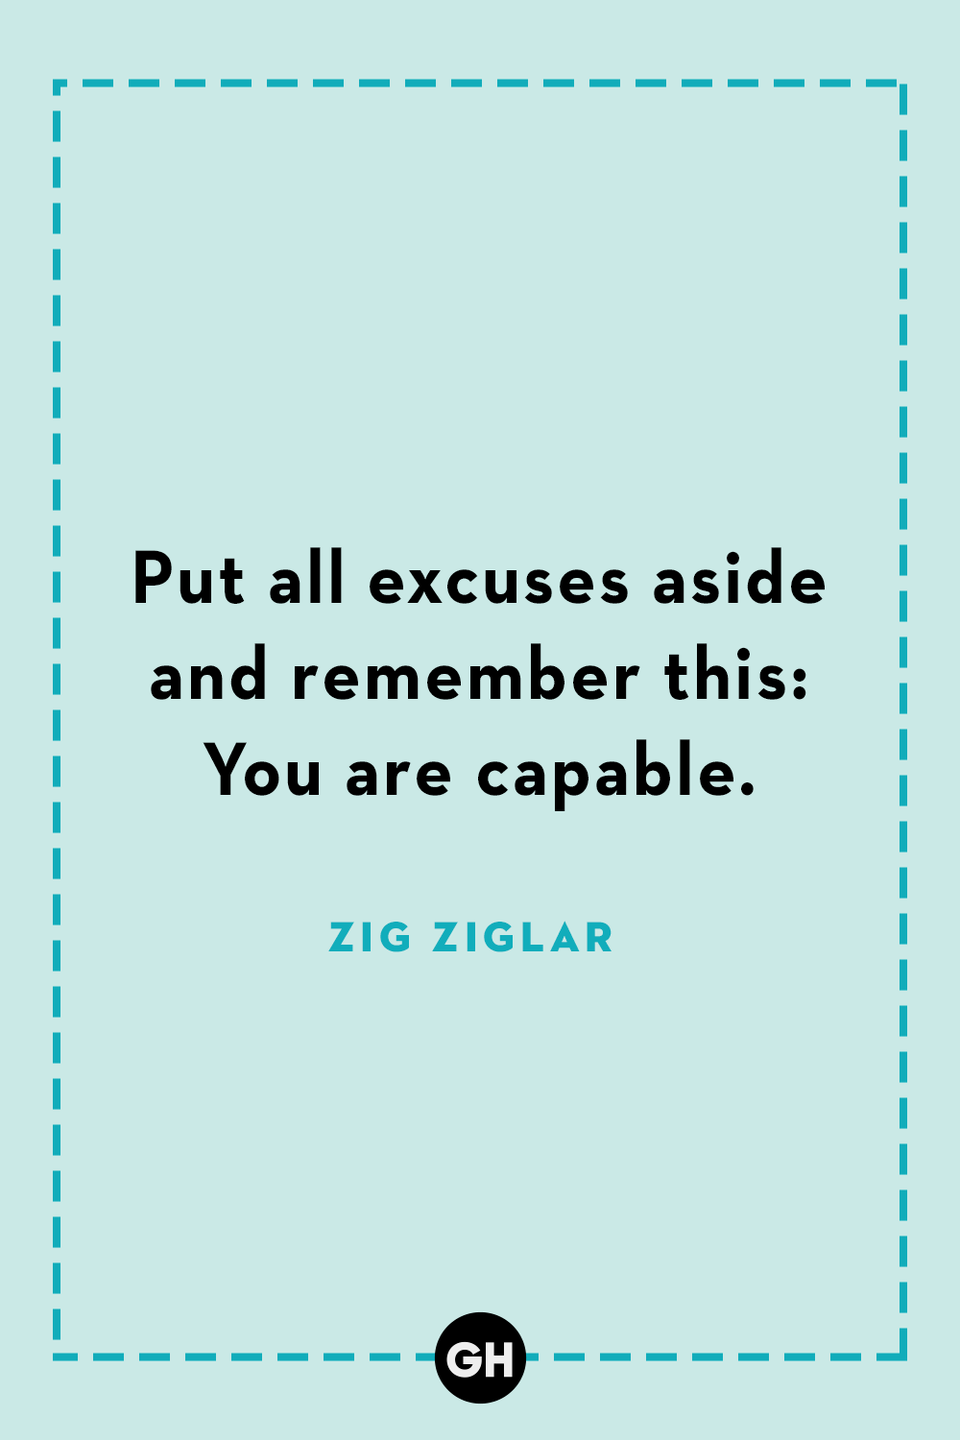 <p>Put all excuses aside and remember this: You are capable.</p>